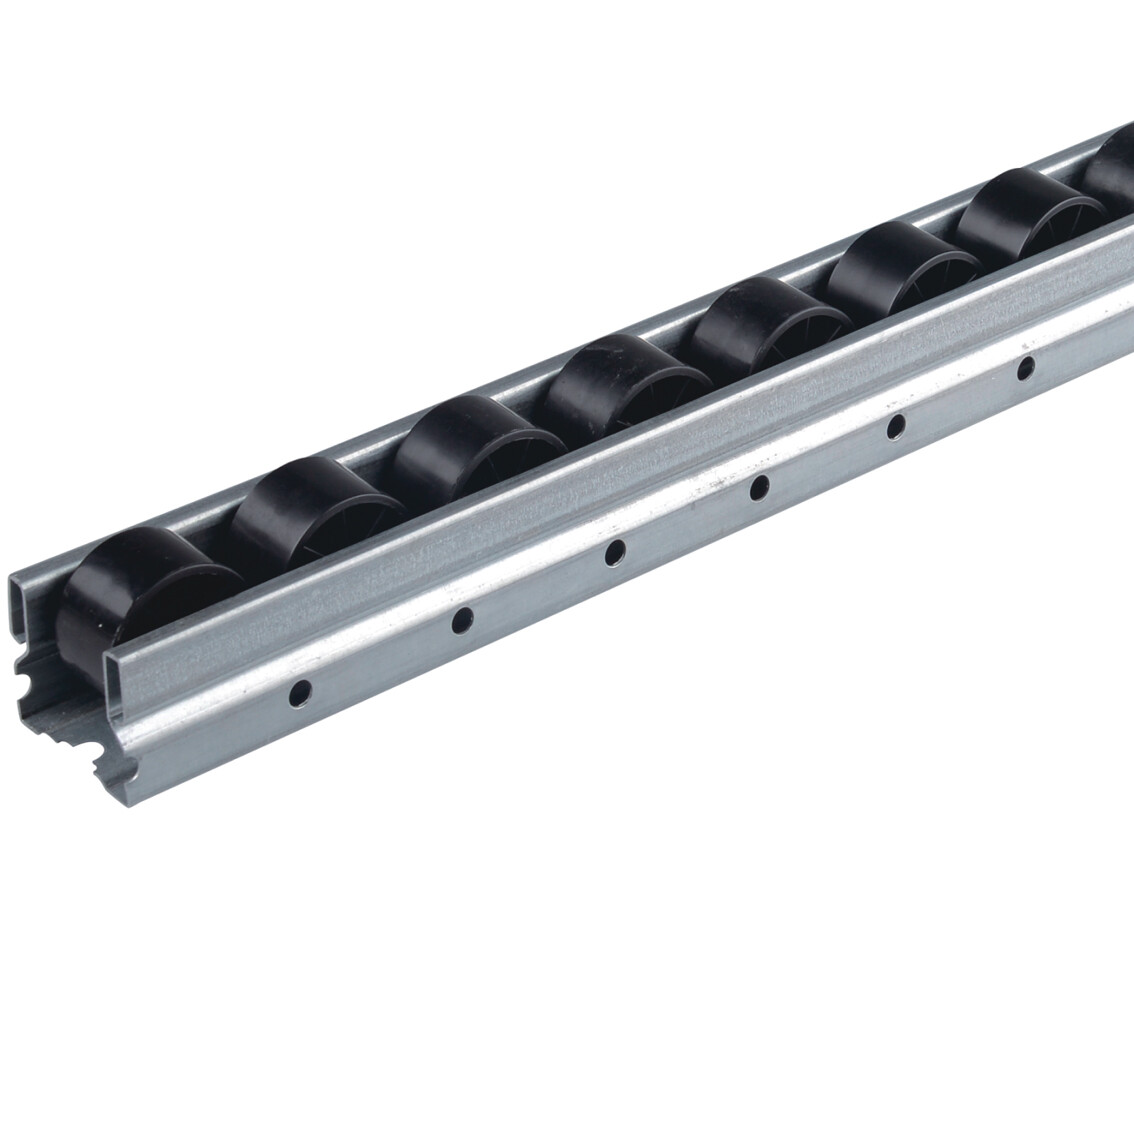 JY-2046 Galvanized Steel Roller Track with Black Wheel